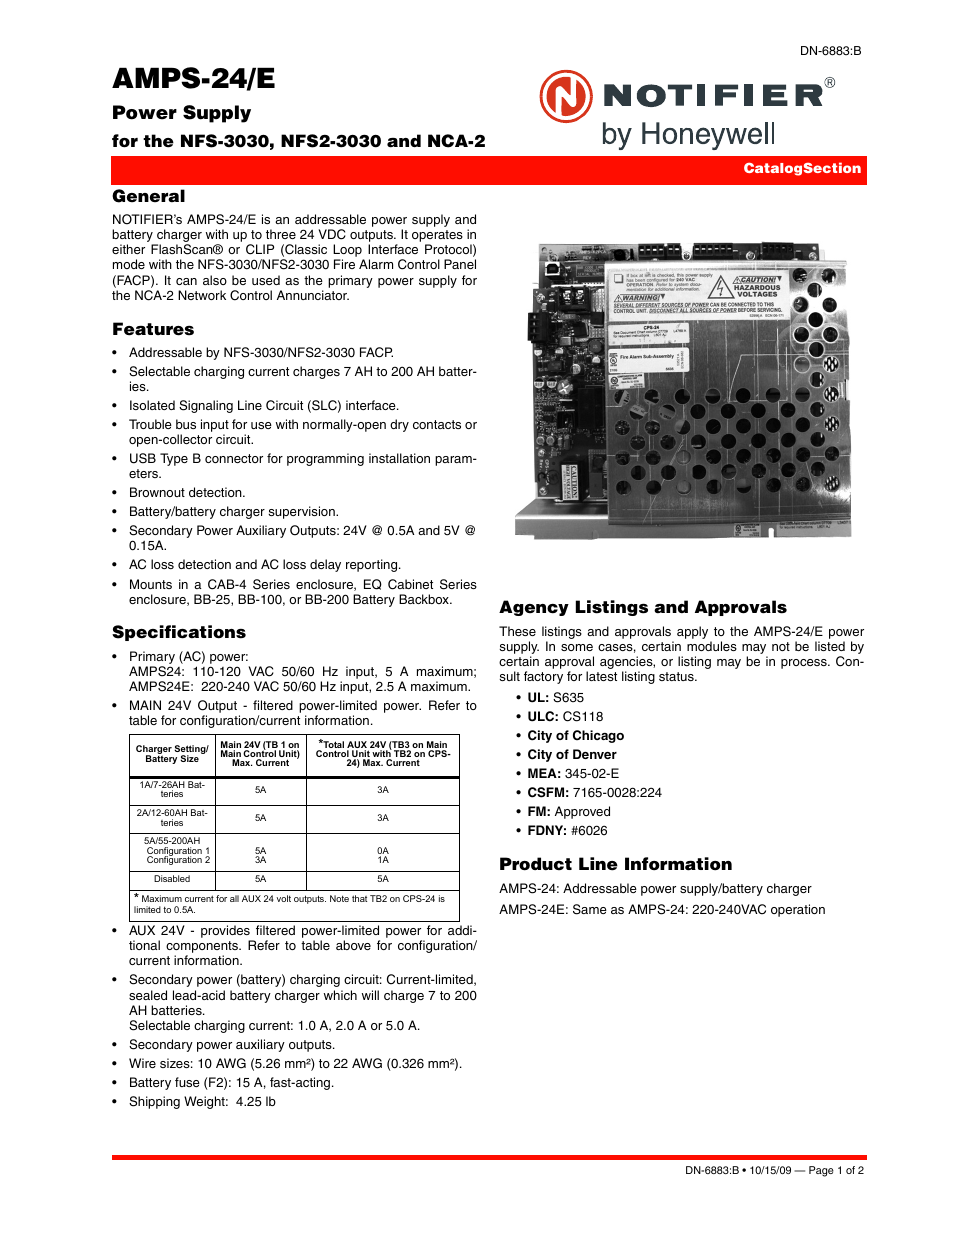 Notifier AMPS-24 User Manual | 2 pages